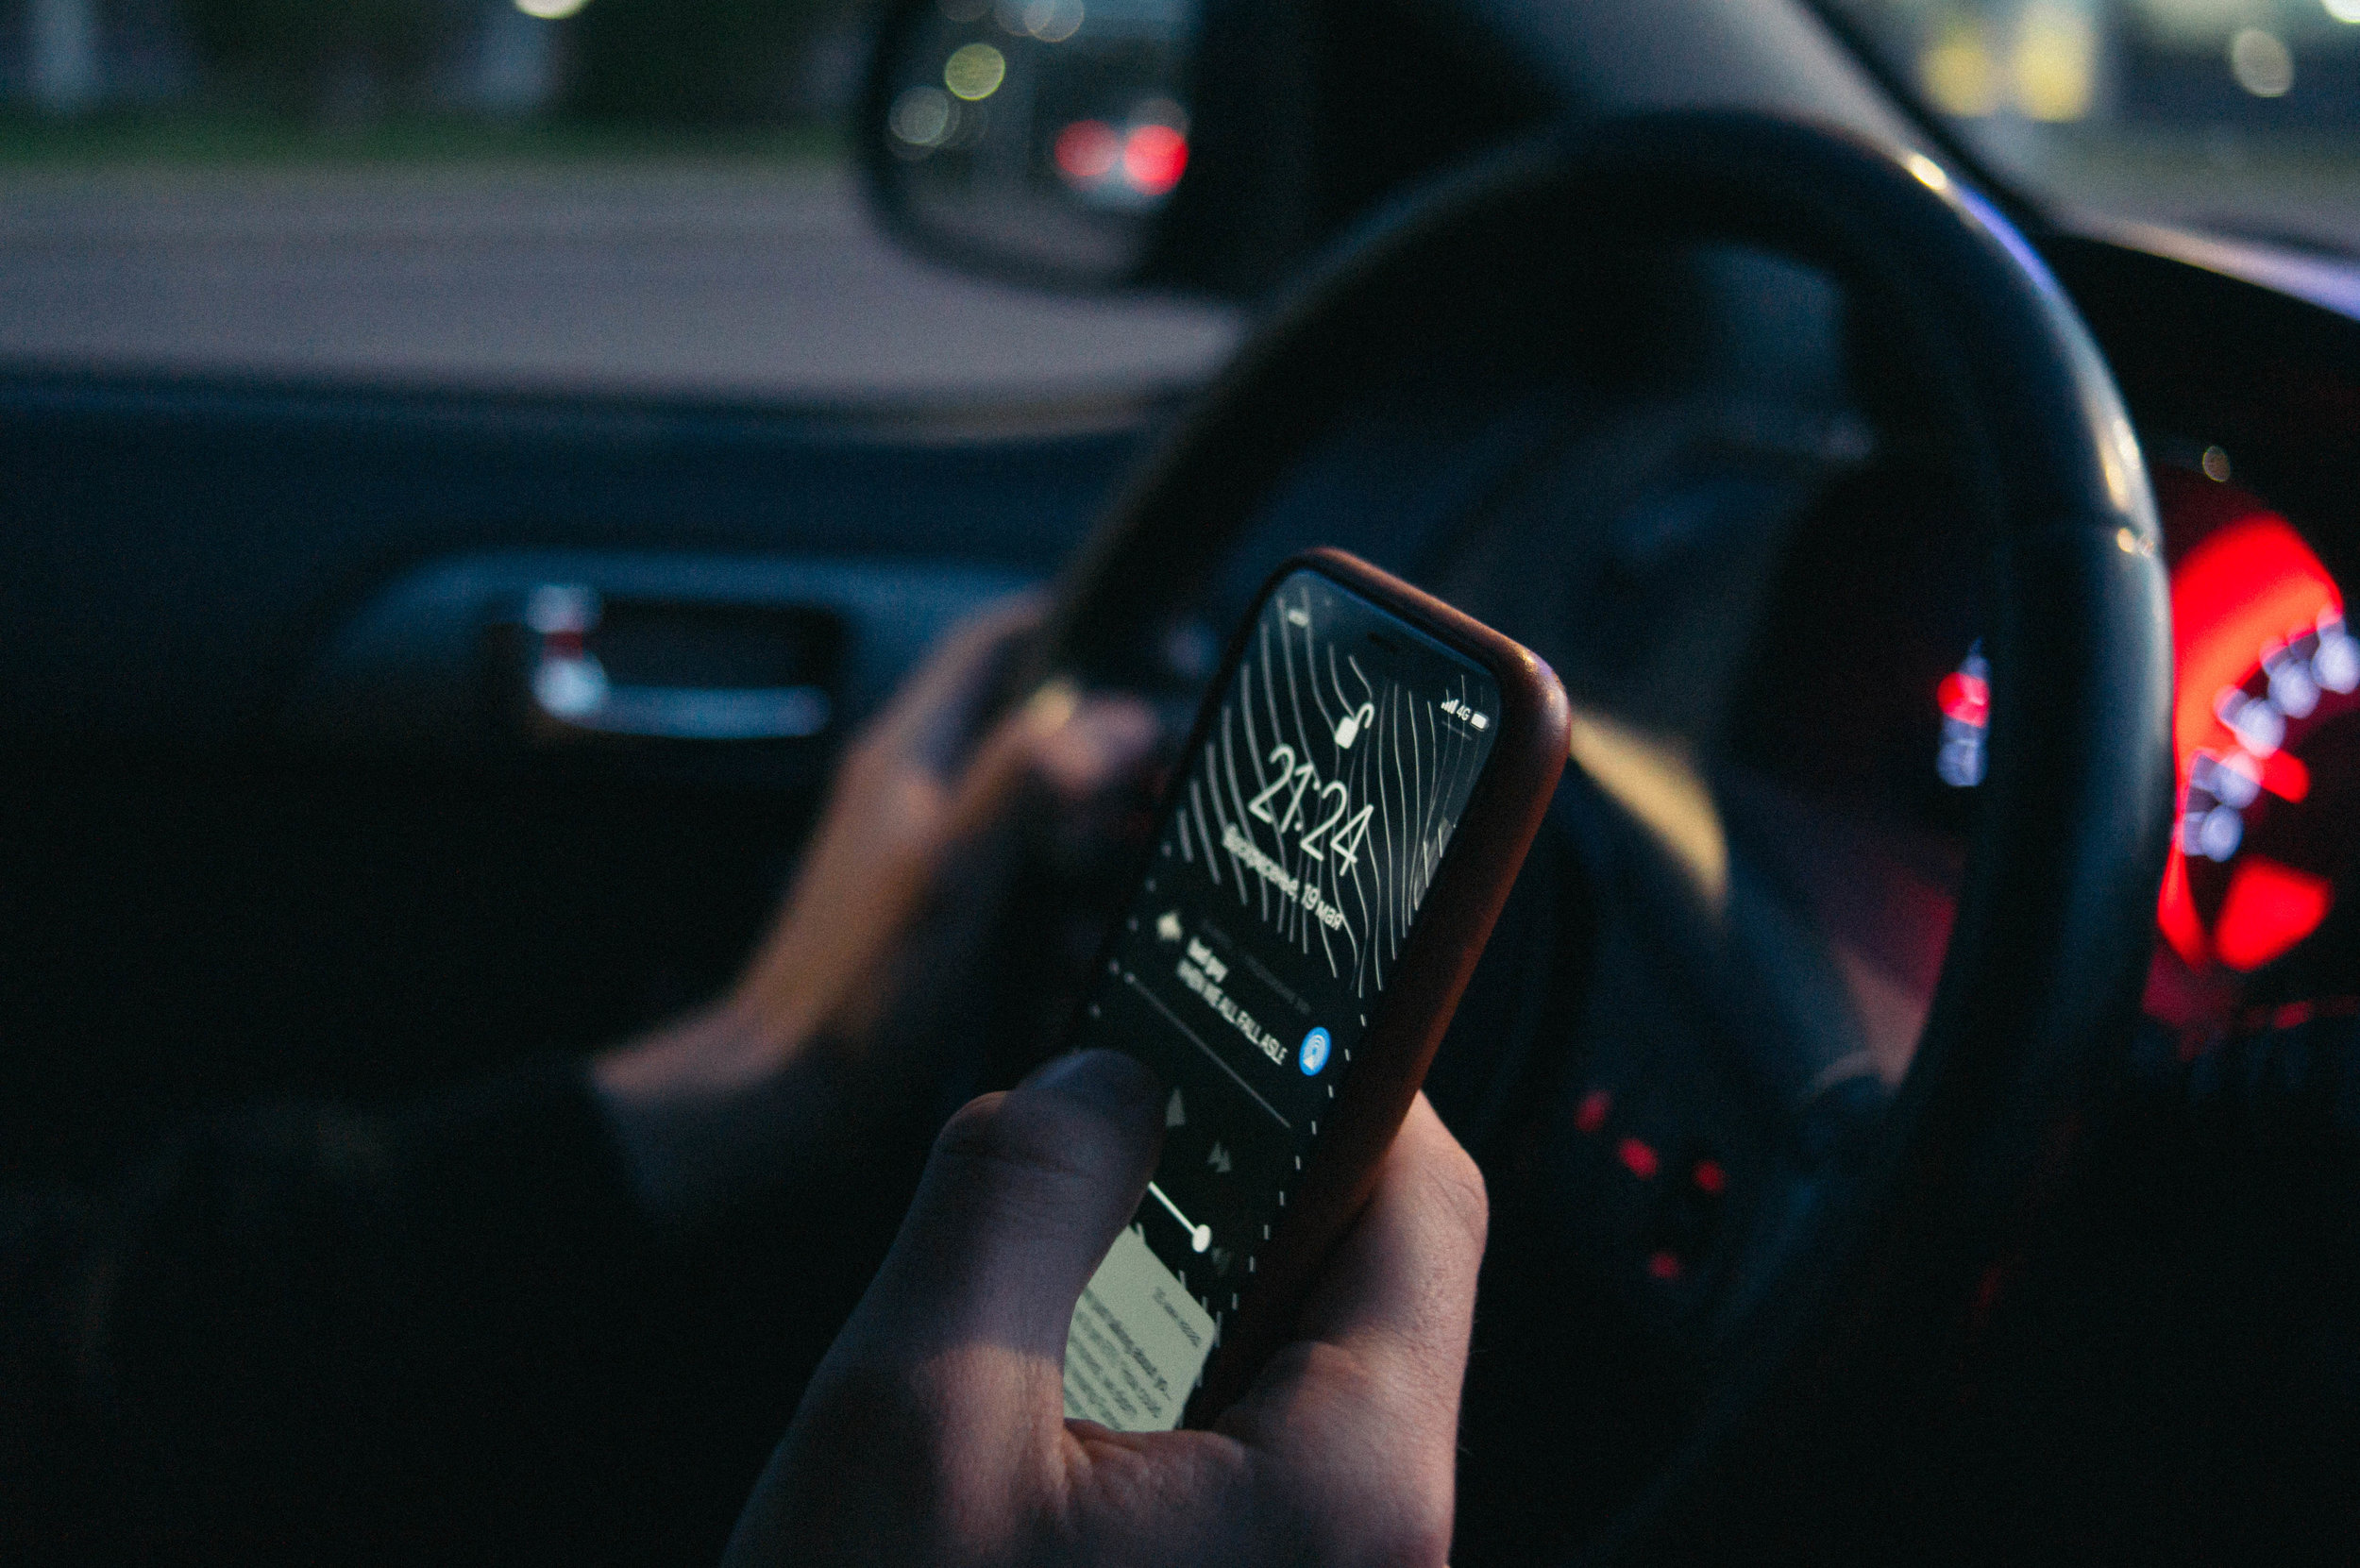 Cell phones - Please remain cell phone free. We have seen too many close-calls from people texting and talking on phones while inching forward.